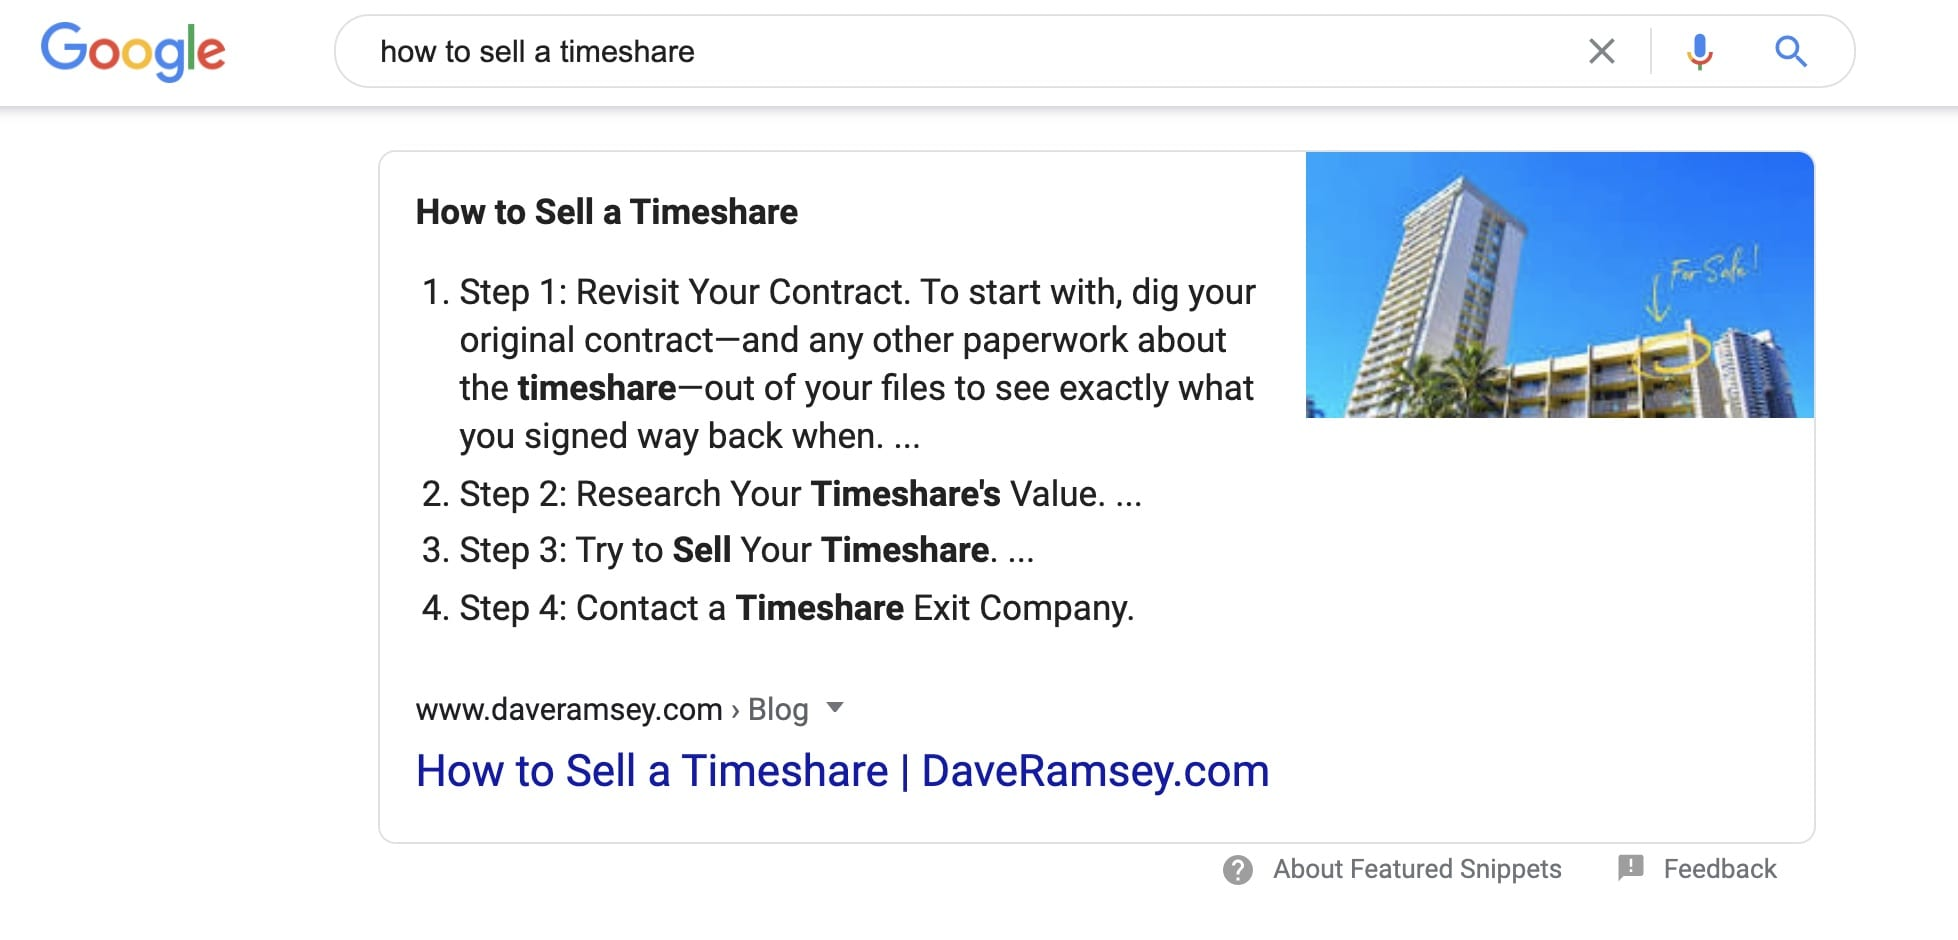 How to Sell a Timeshare is a featured snippet earned by Dave Ramsey